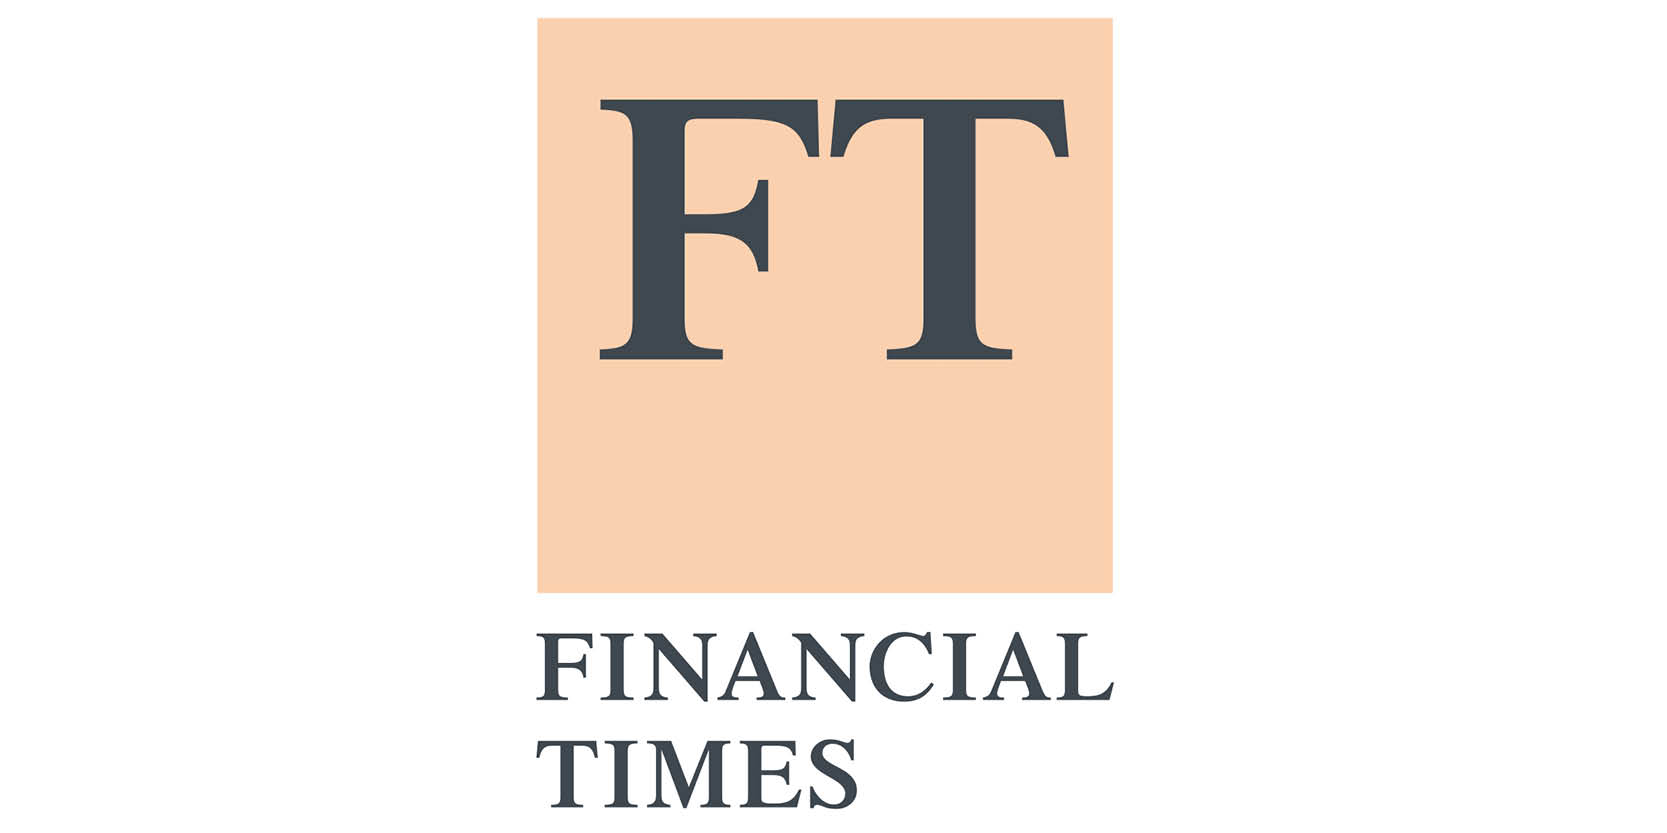 Financial Times: Risk management: fake social media sites drive growth of 'threat intelligence' sector